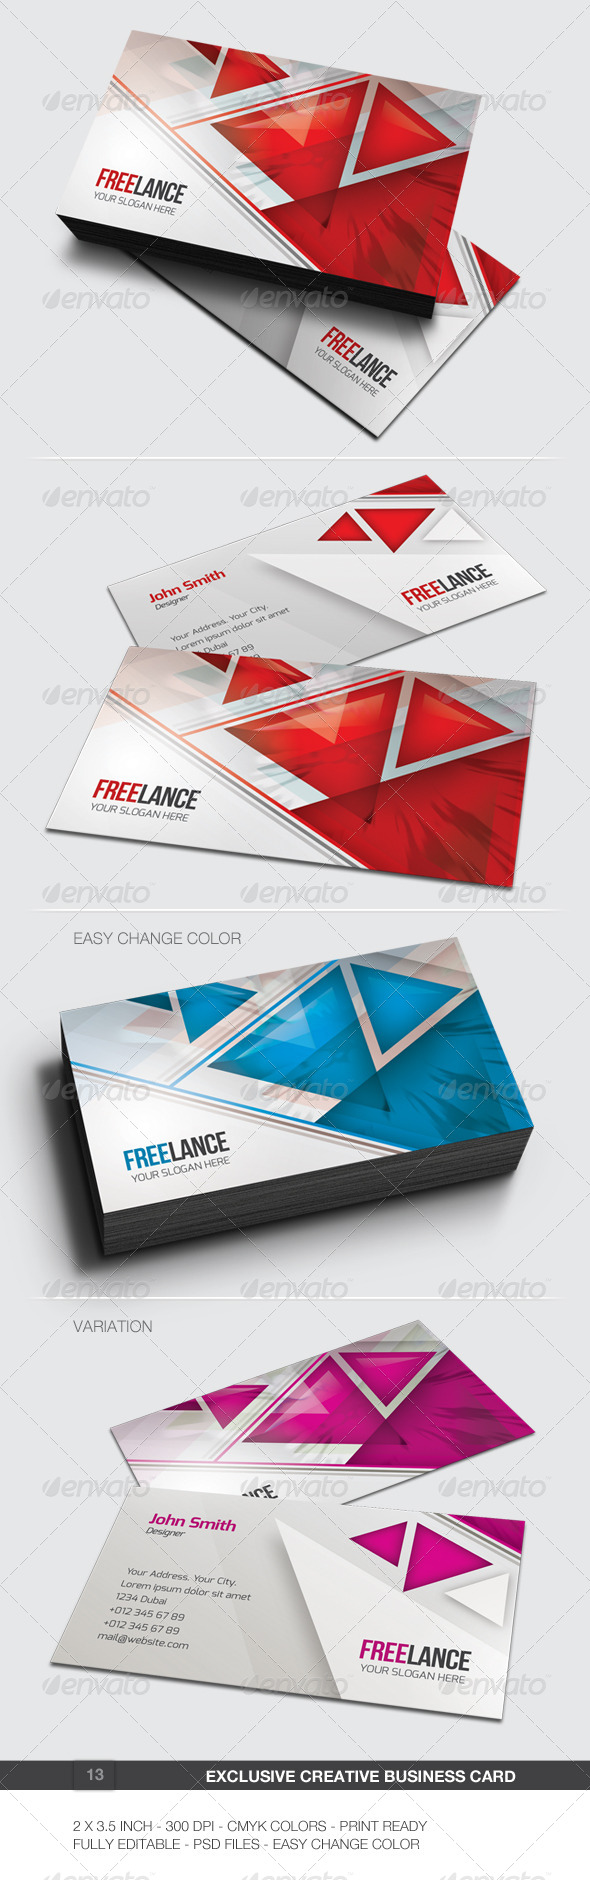 Exclusive Creative Business Card - 13 - Creative Business Cards